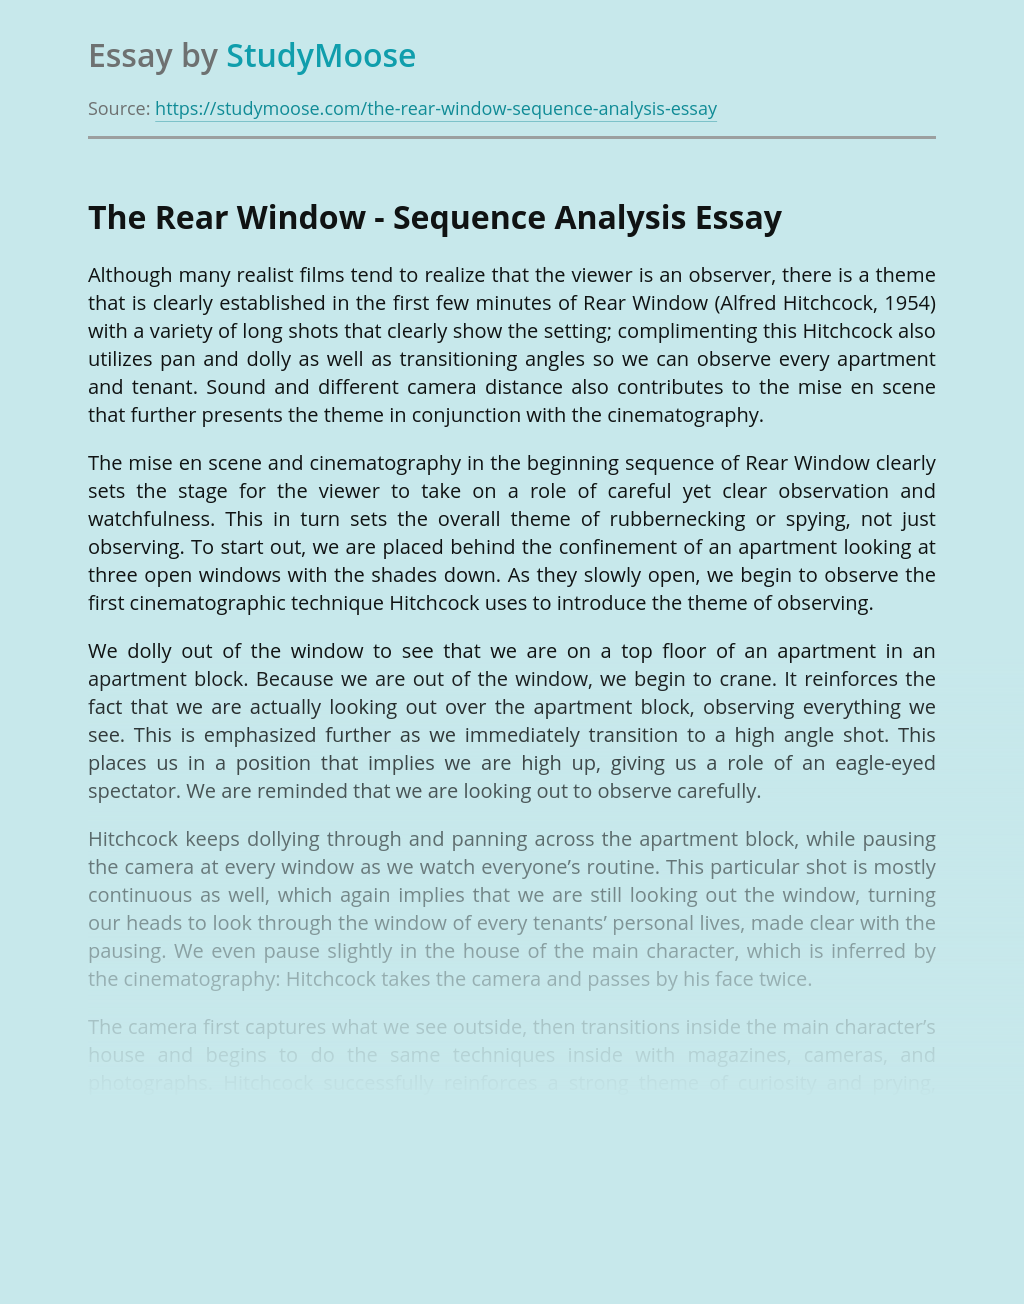 The Rear Window - Sequence Analysis